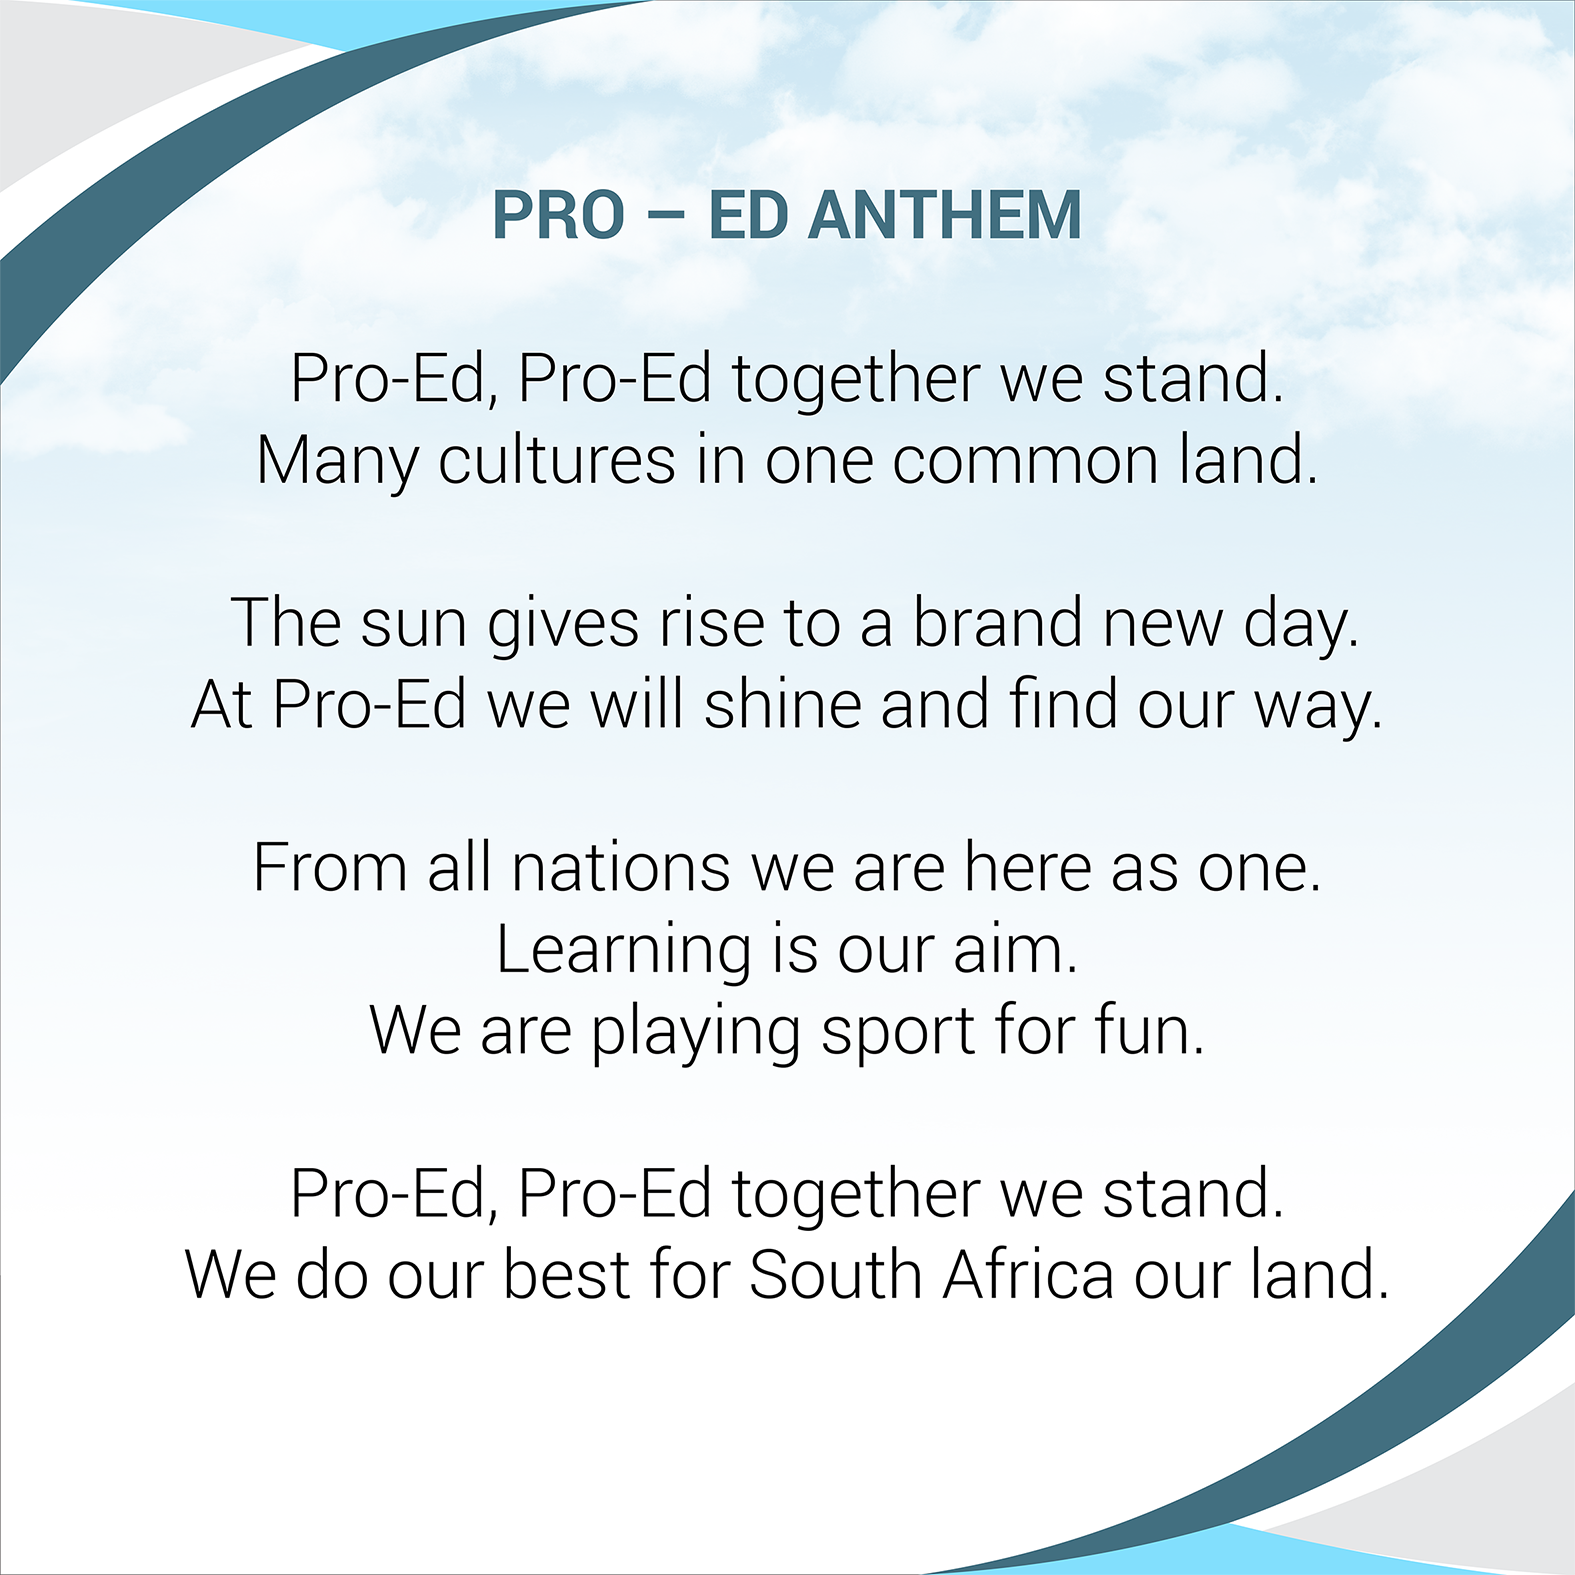 The Pro-Ed Anthem we teach and live by